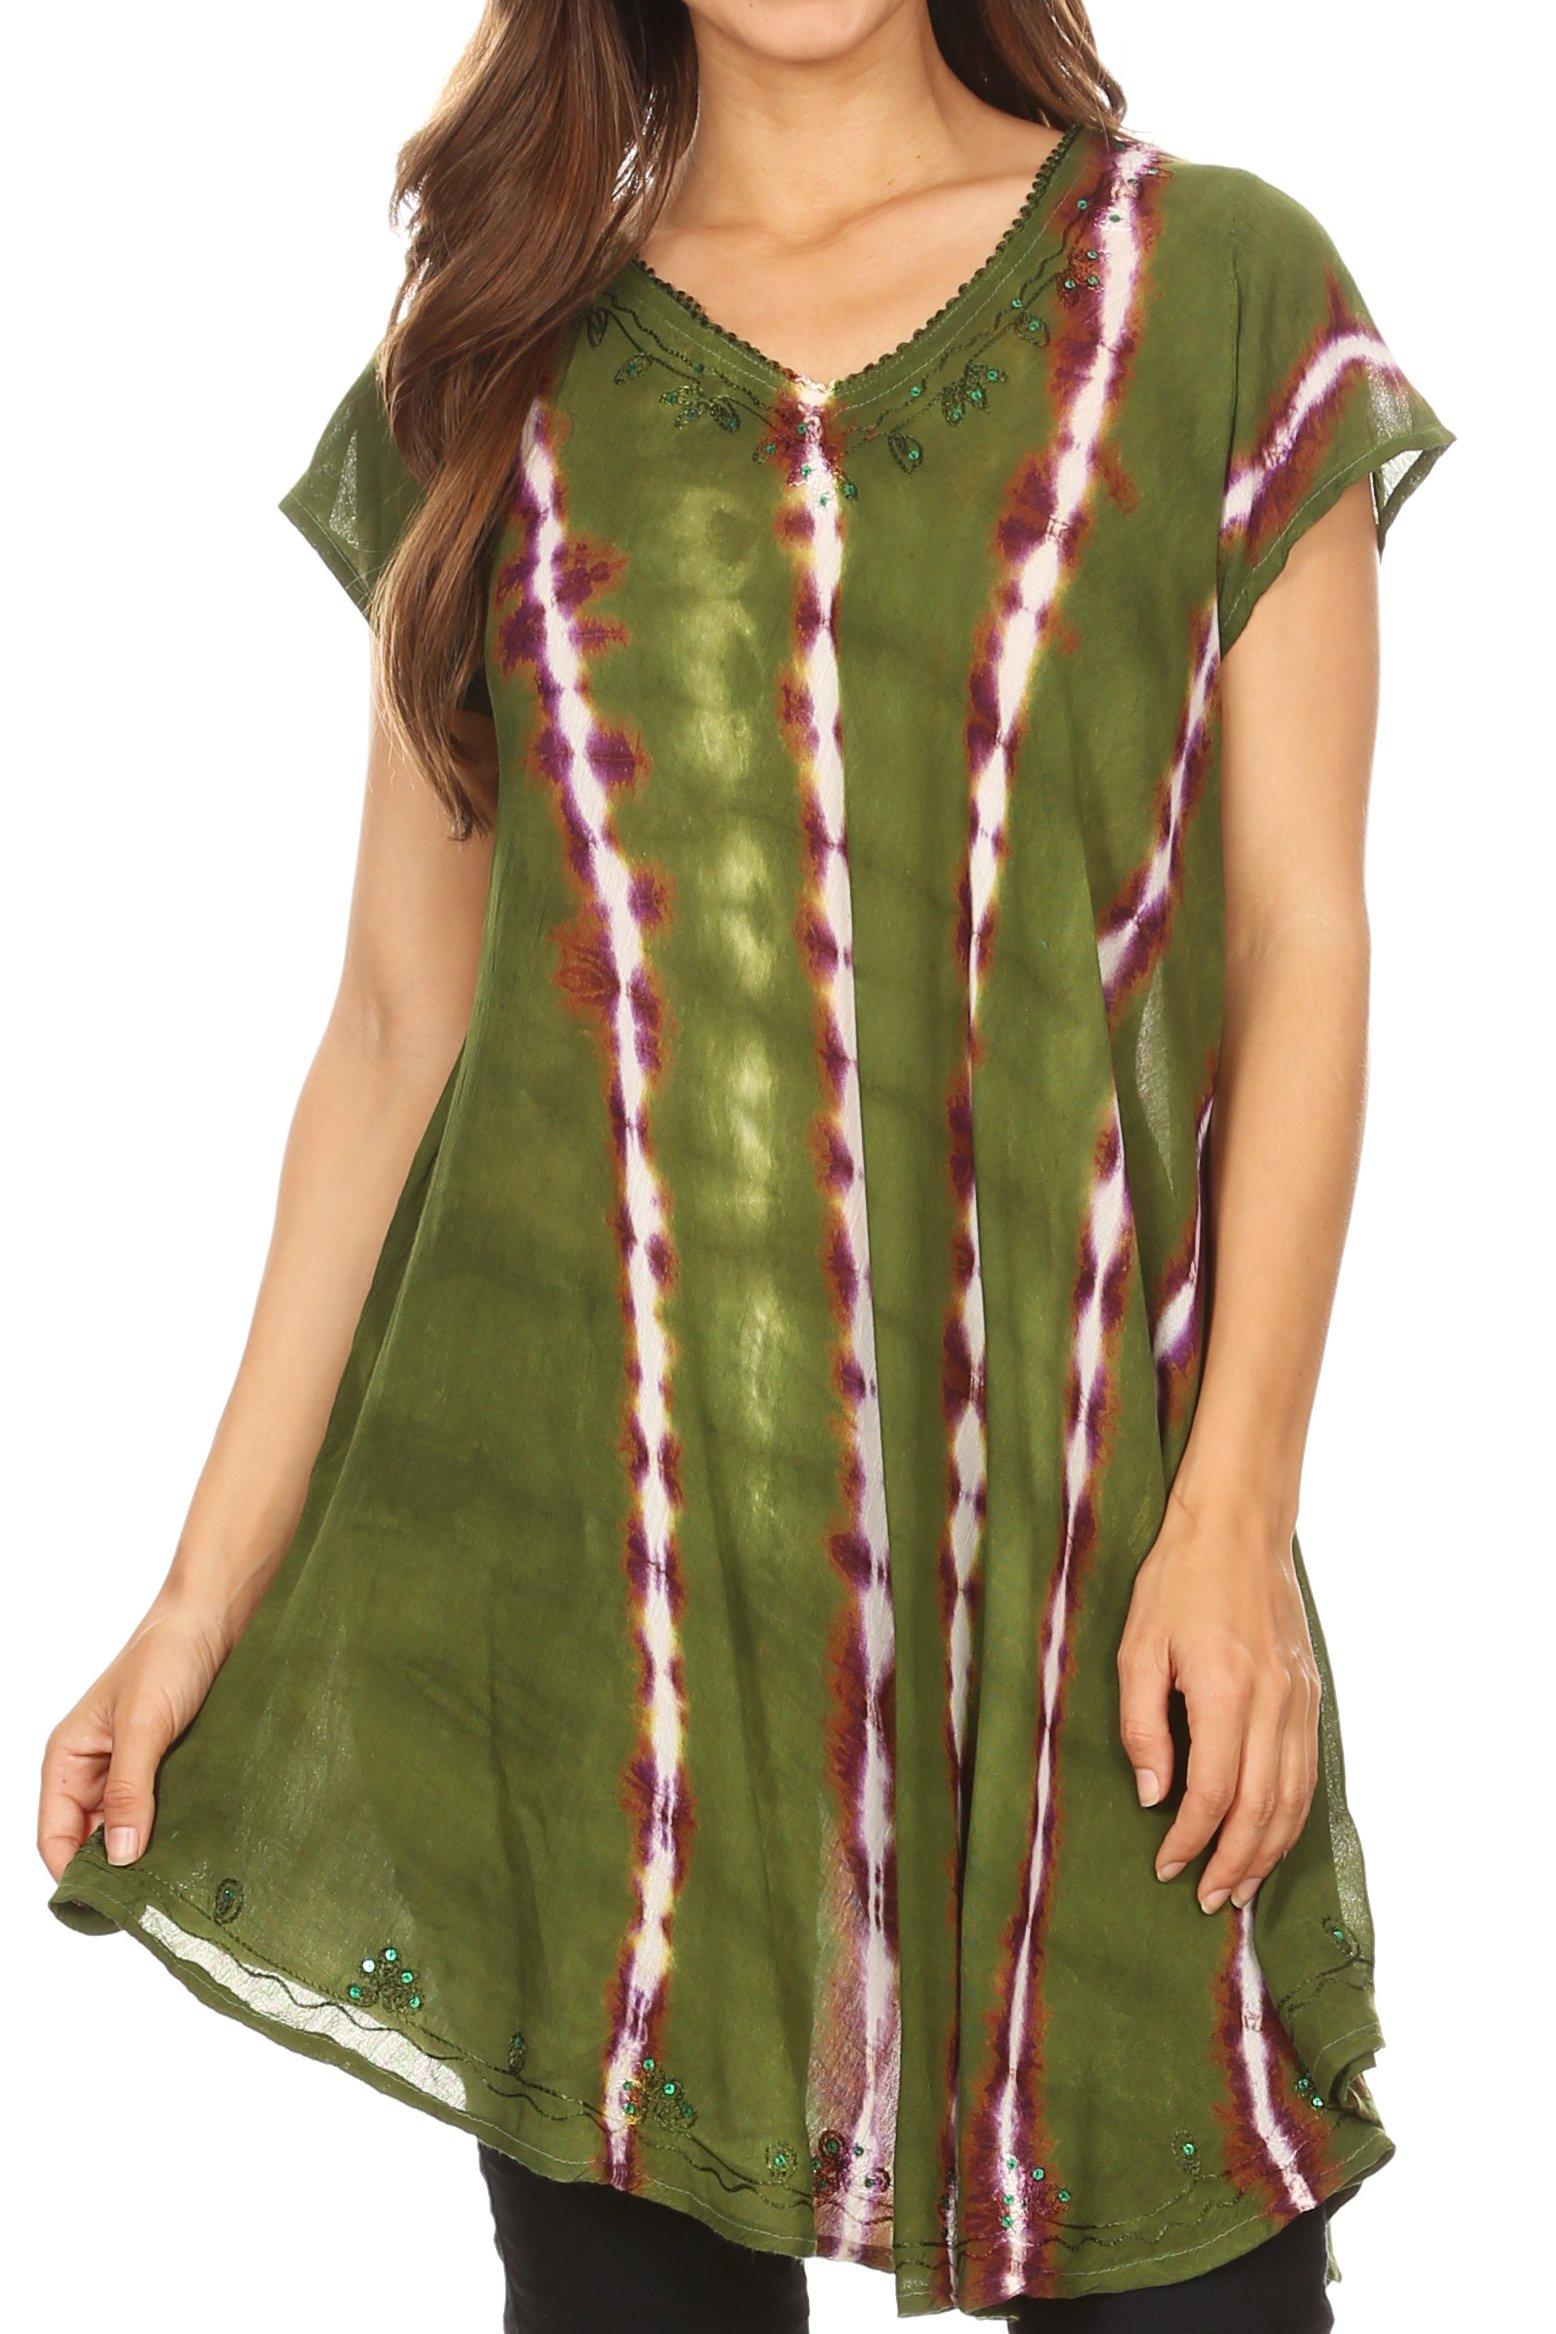 Sakkas 18702 - Maite Womens Tie Dye V Neck Tunic Top Ethnic Summer Style Flowy w/Sequin - Green - OSP by Sakkas